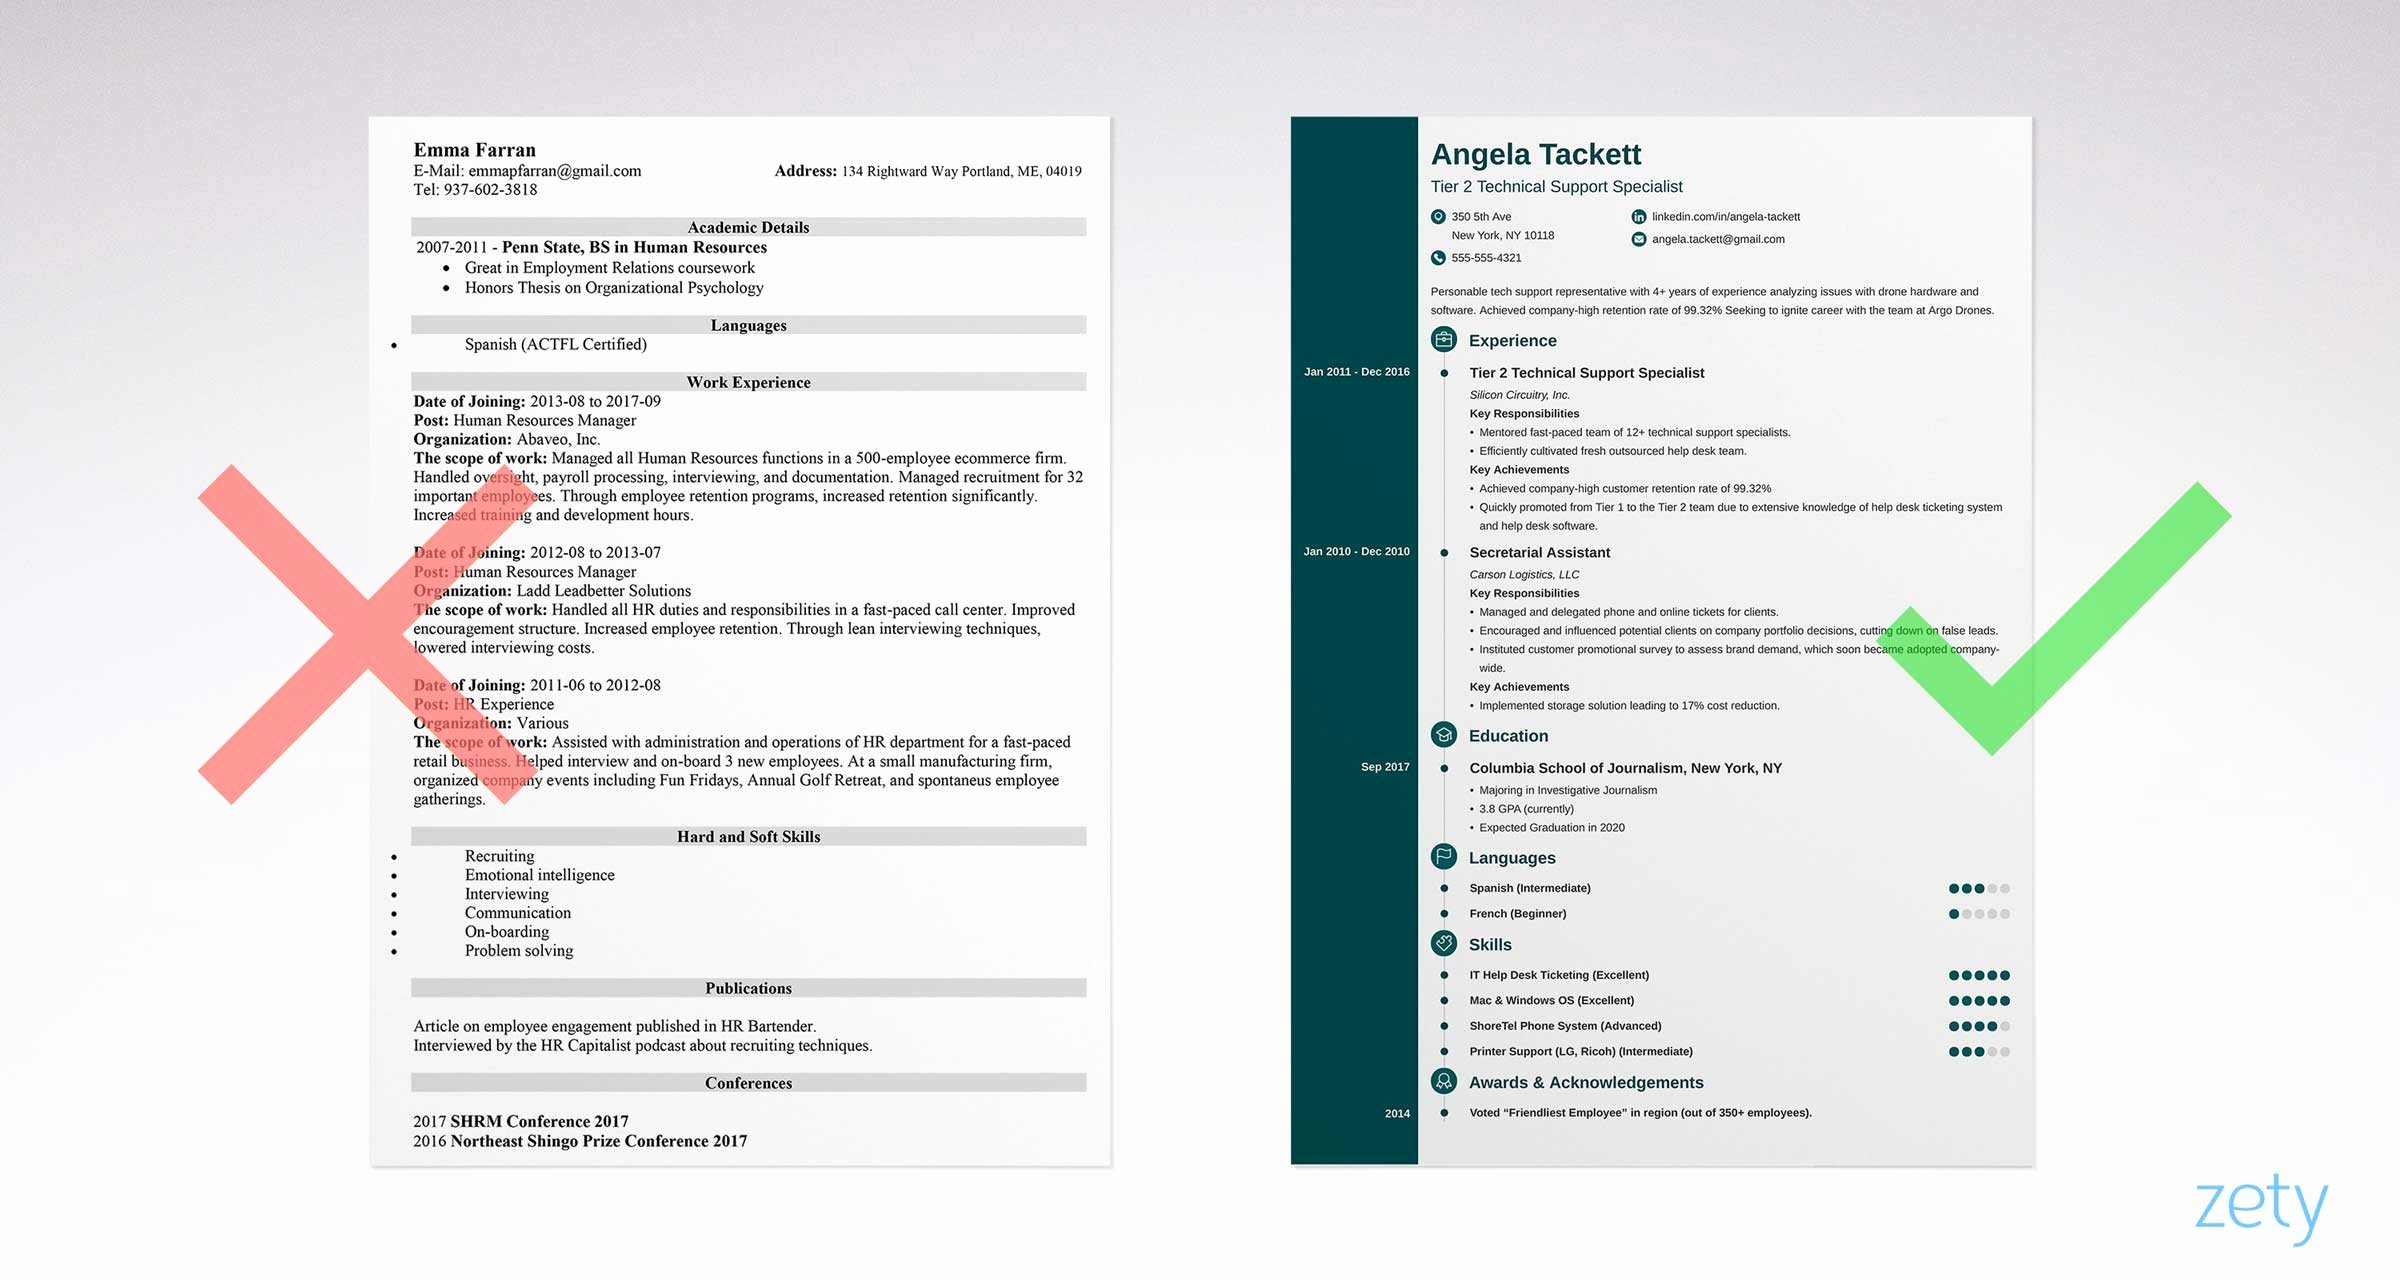 Simple Professional Resume Template Elegant Simple Resume Templates 15 Examples to Download & Use now